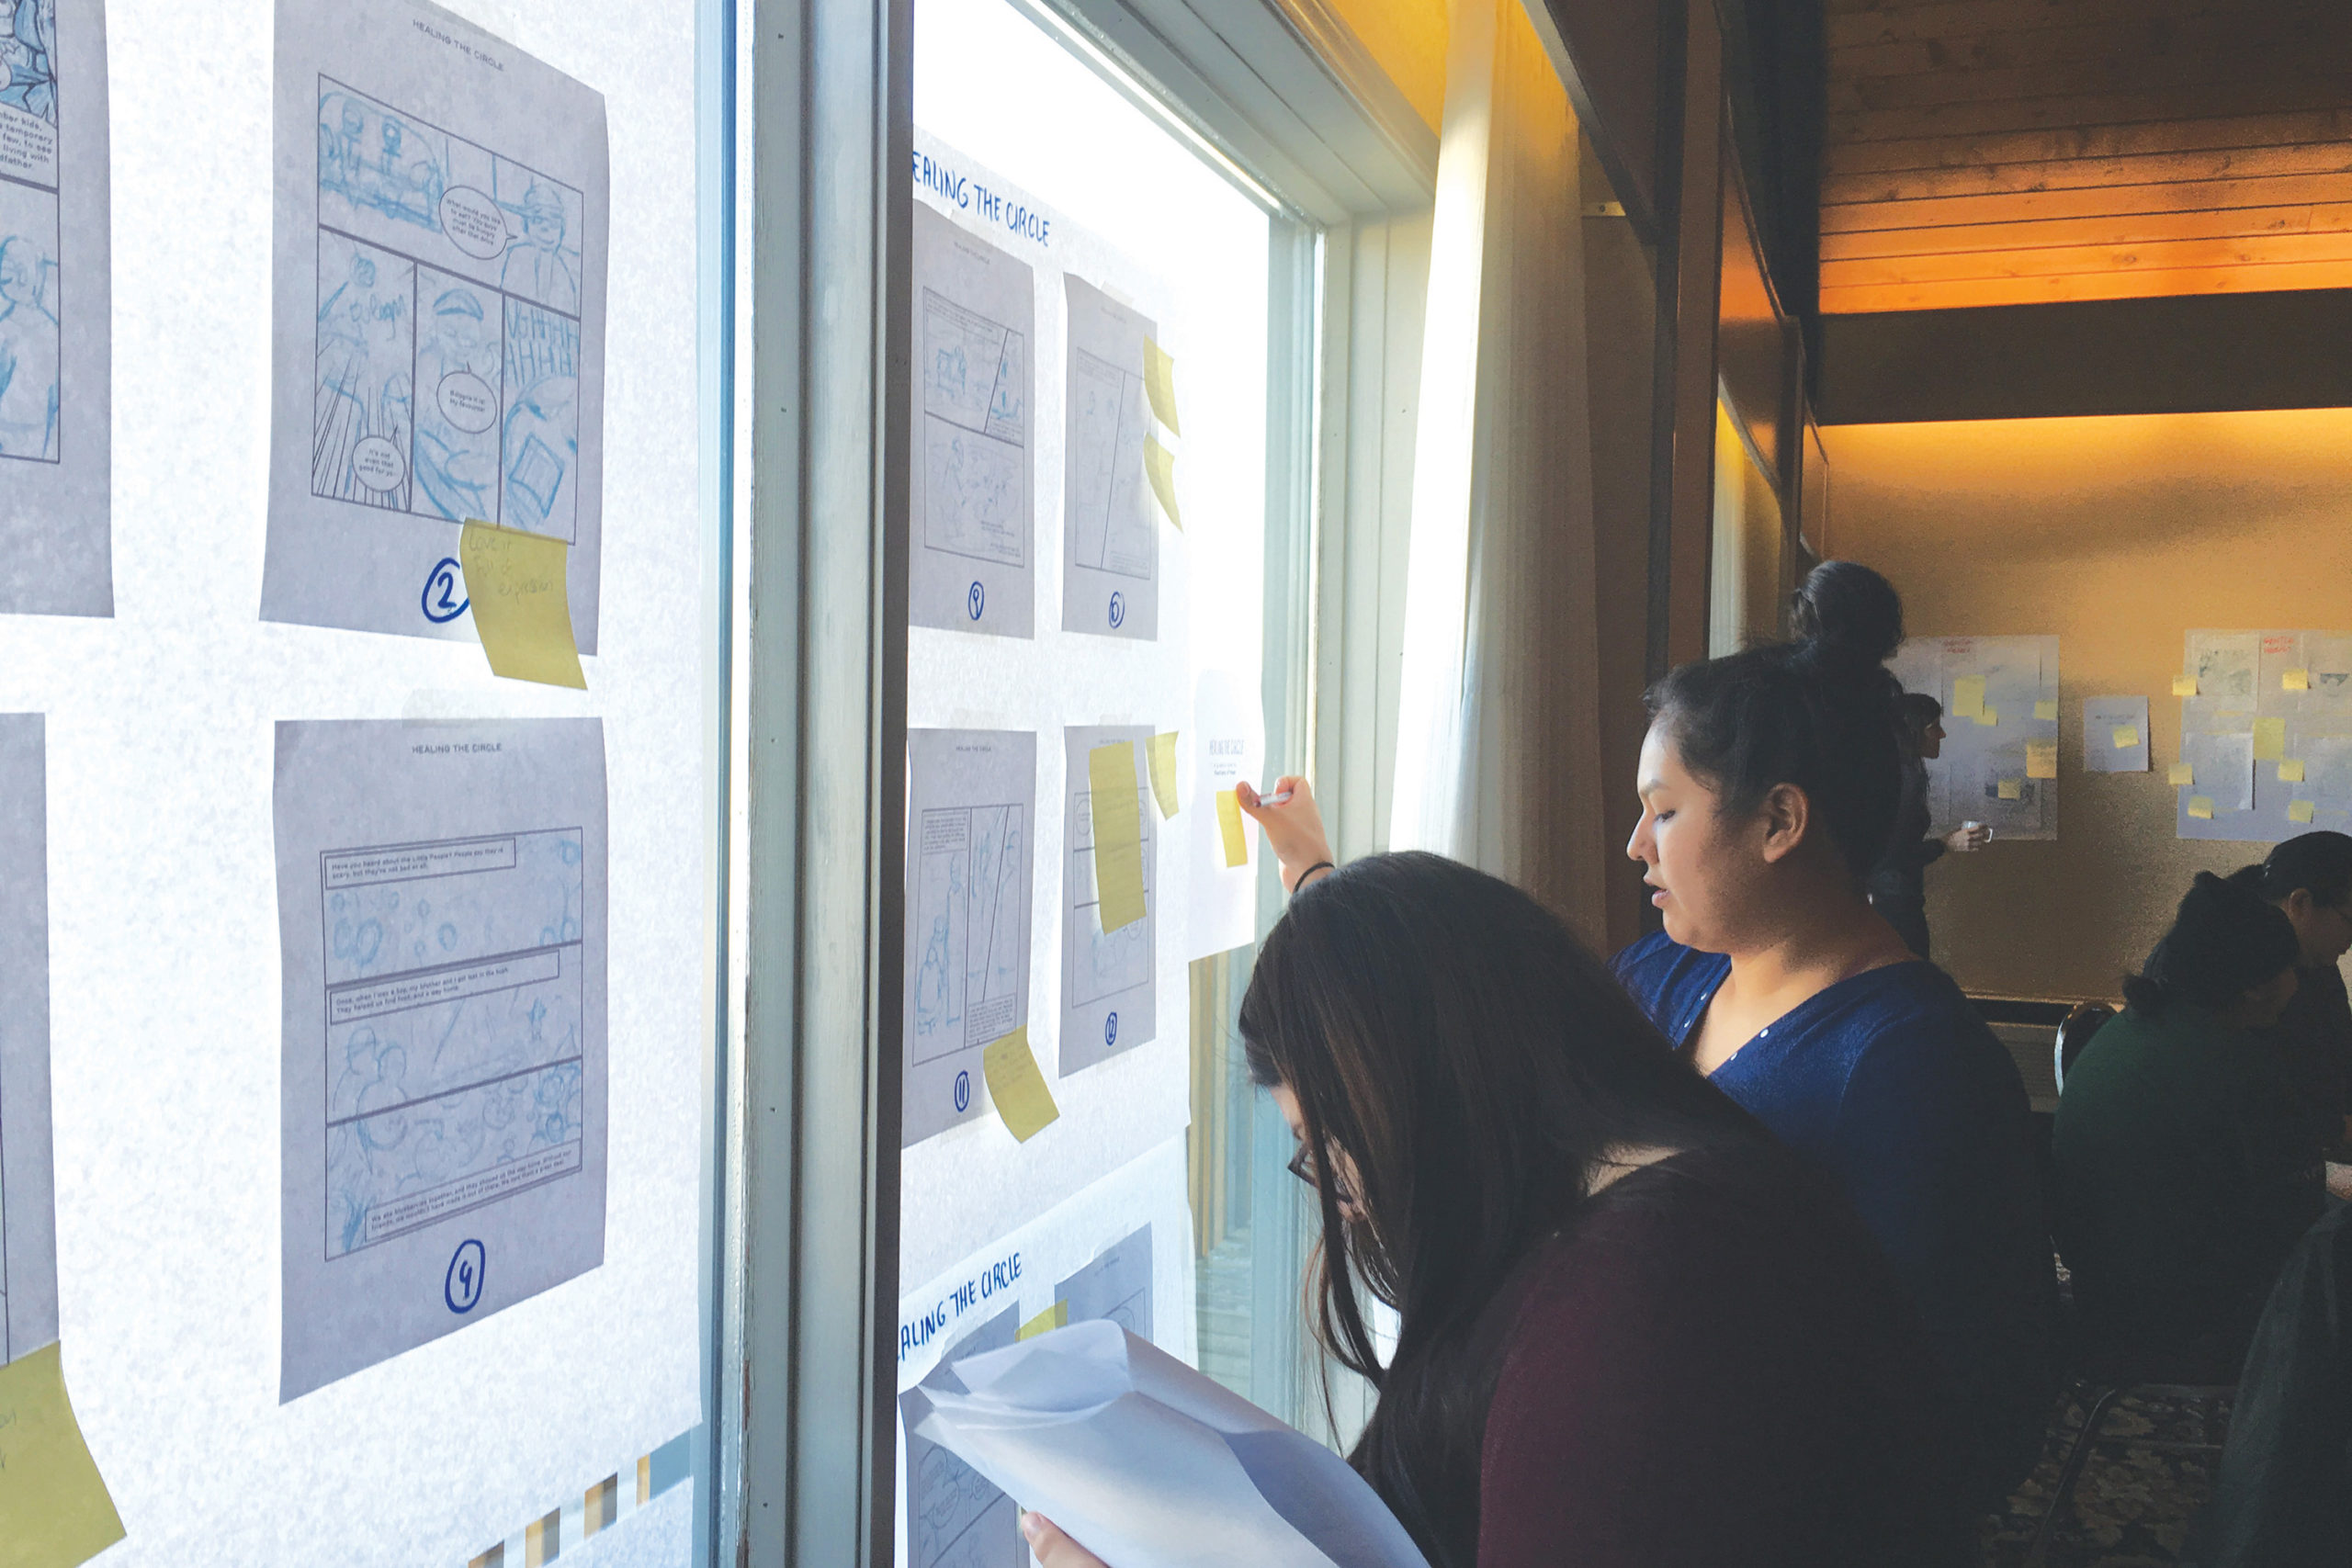 Photo of two young advisors standing in front of a window, to which are taped several graphic novel storyboards. The advisors are giving feedback by placing post-its on individual panels.